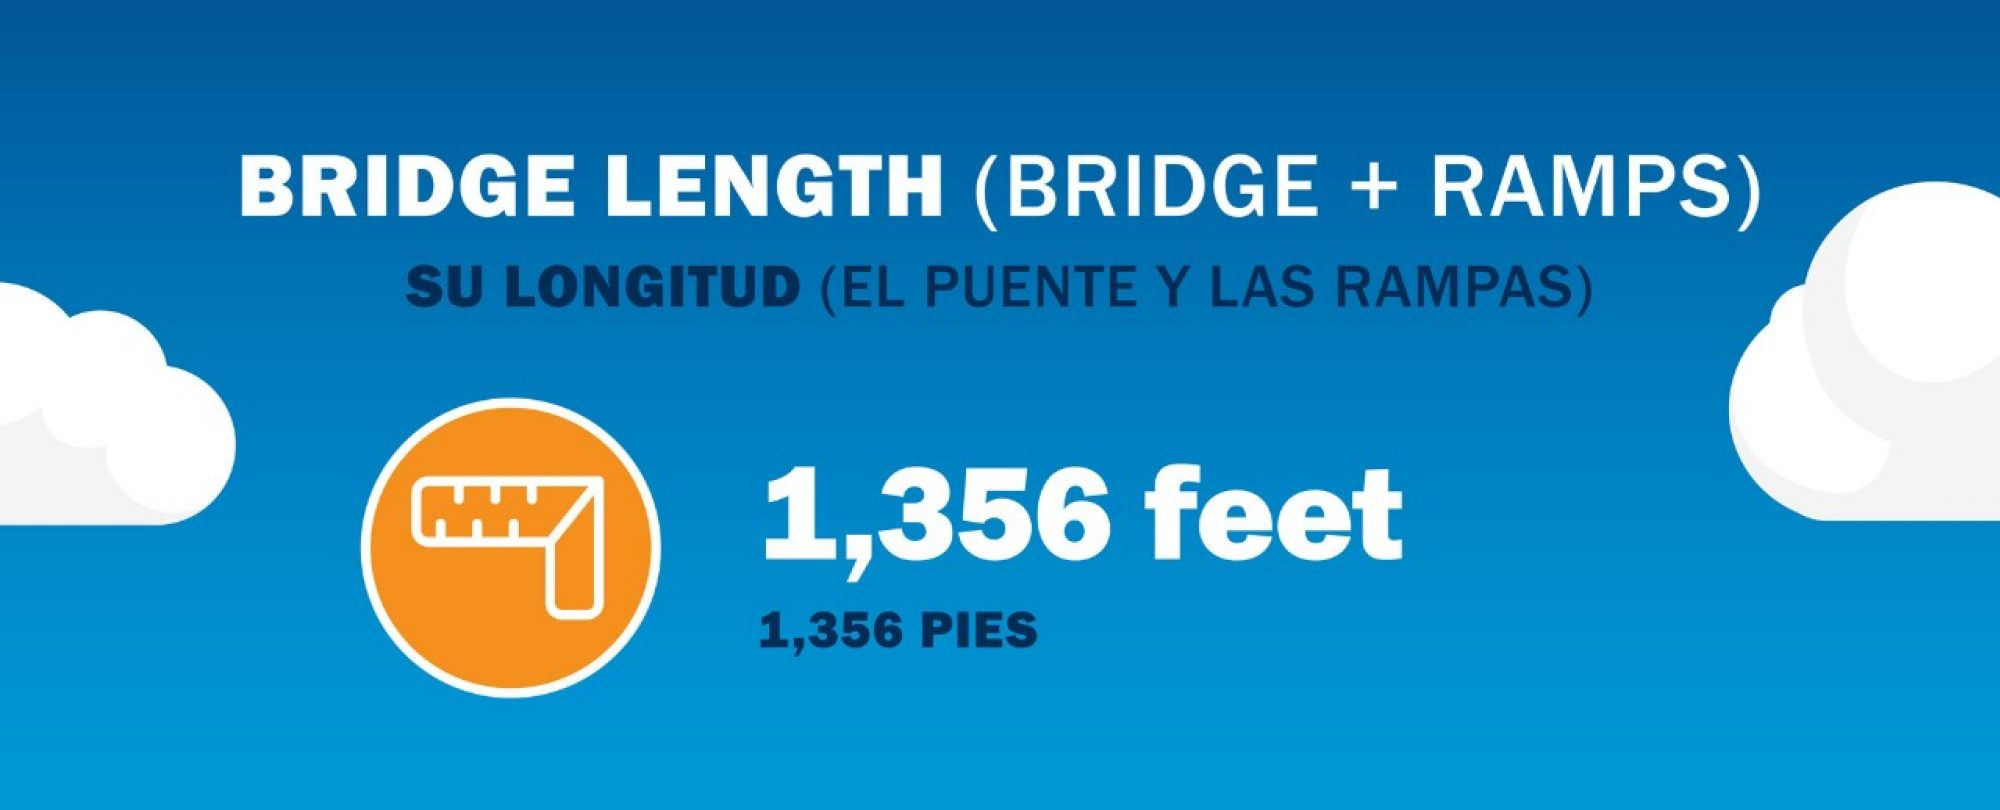 Bridge length: 1,356 feet